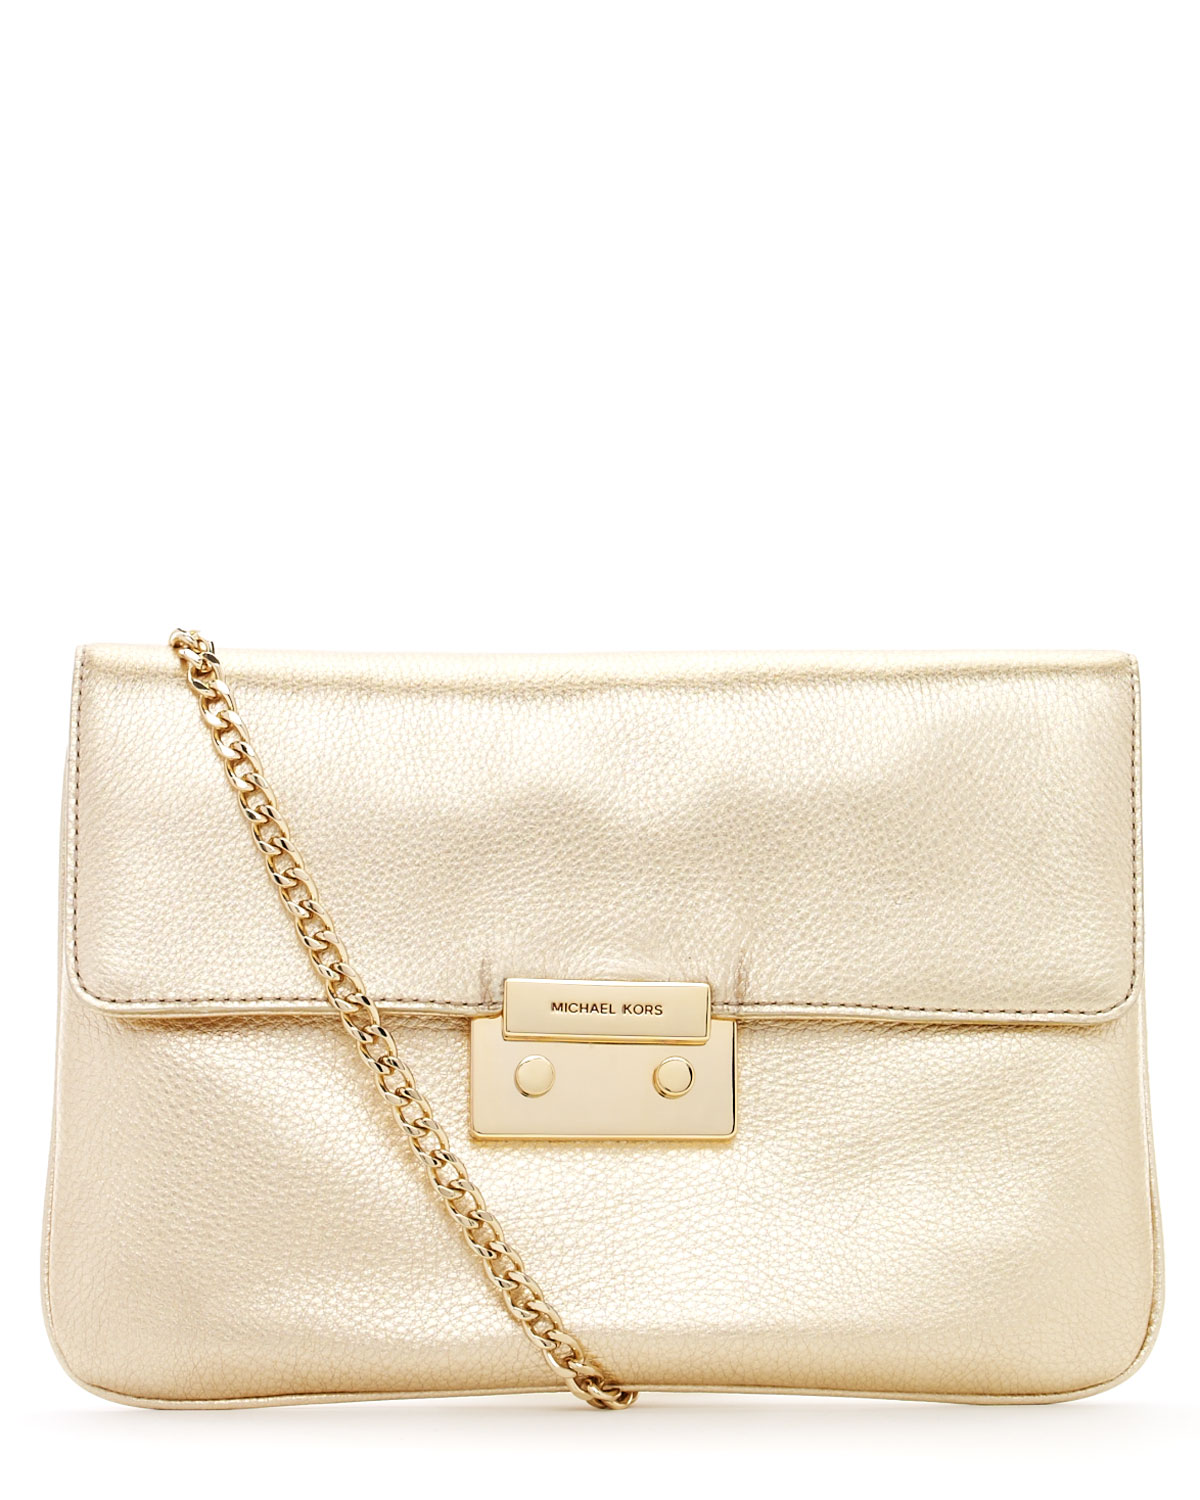 Michael michael kors Sloan Clutch Pale Gold in Metallic | Lyst